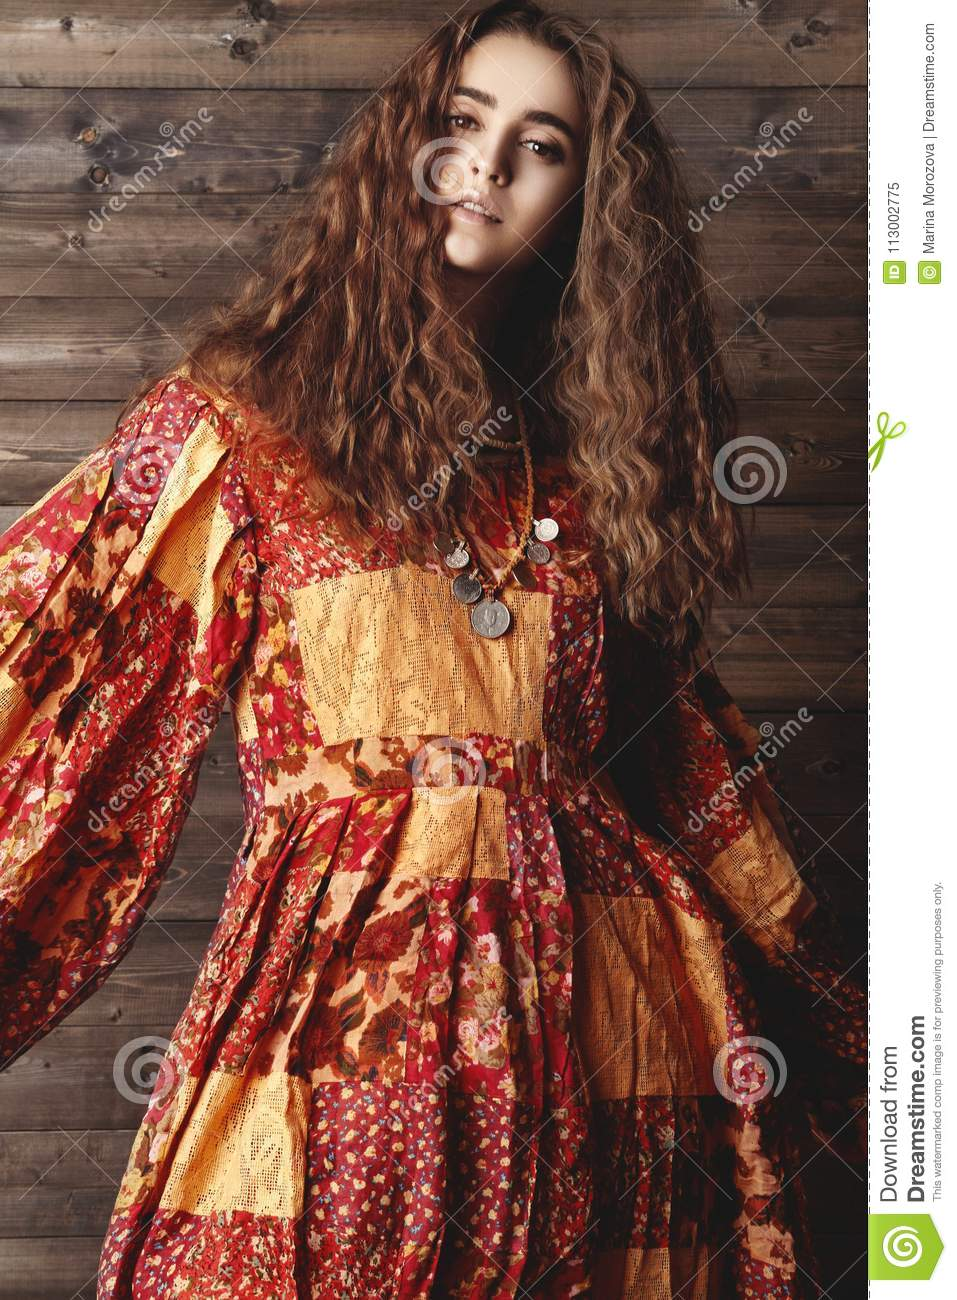 Beautiful Young Woman With Long Curly Hairstyle Fashion Jewelry